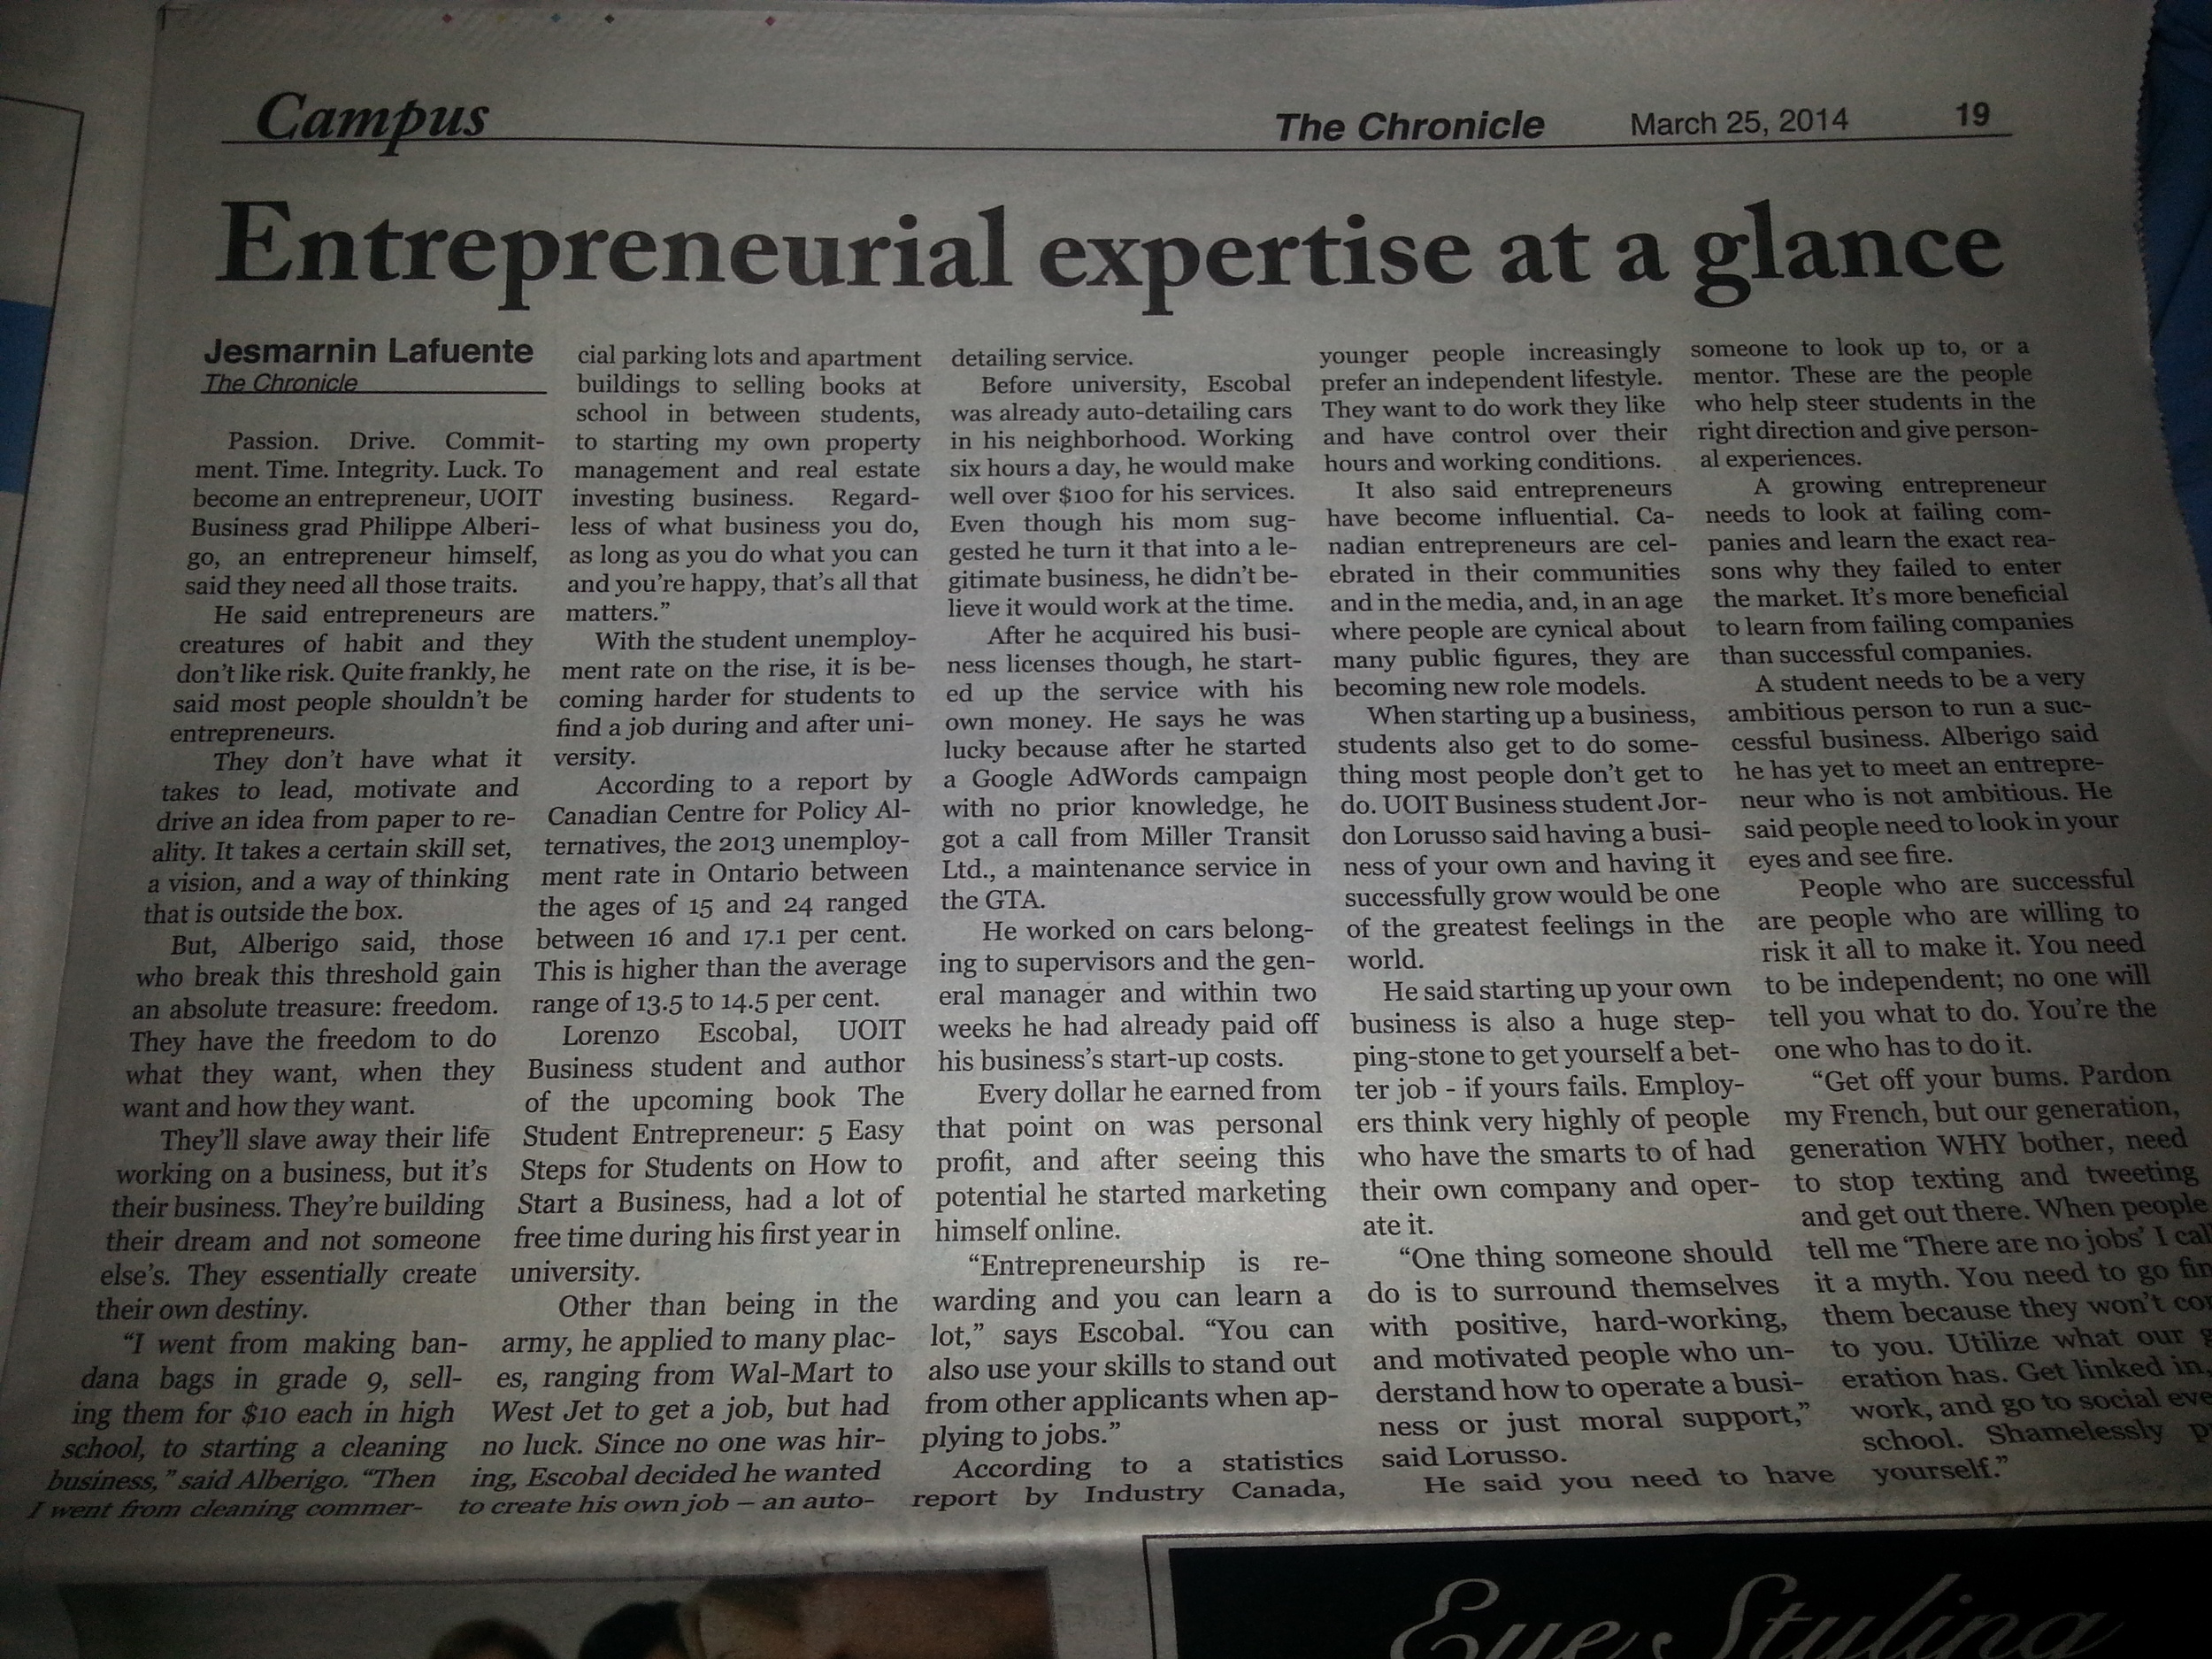 Entrepreneurial expertise at a glance